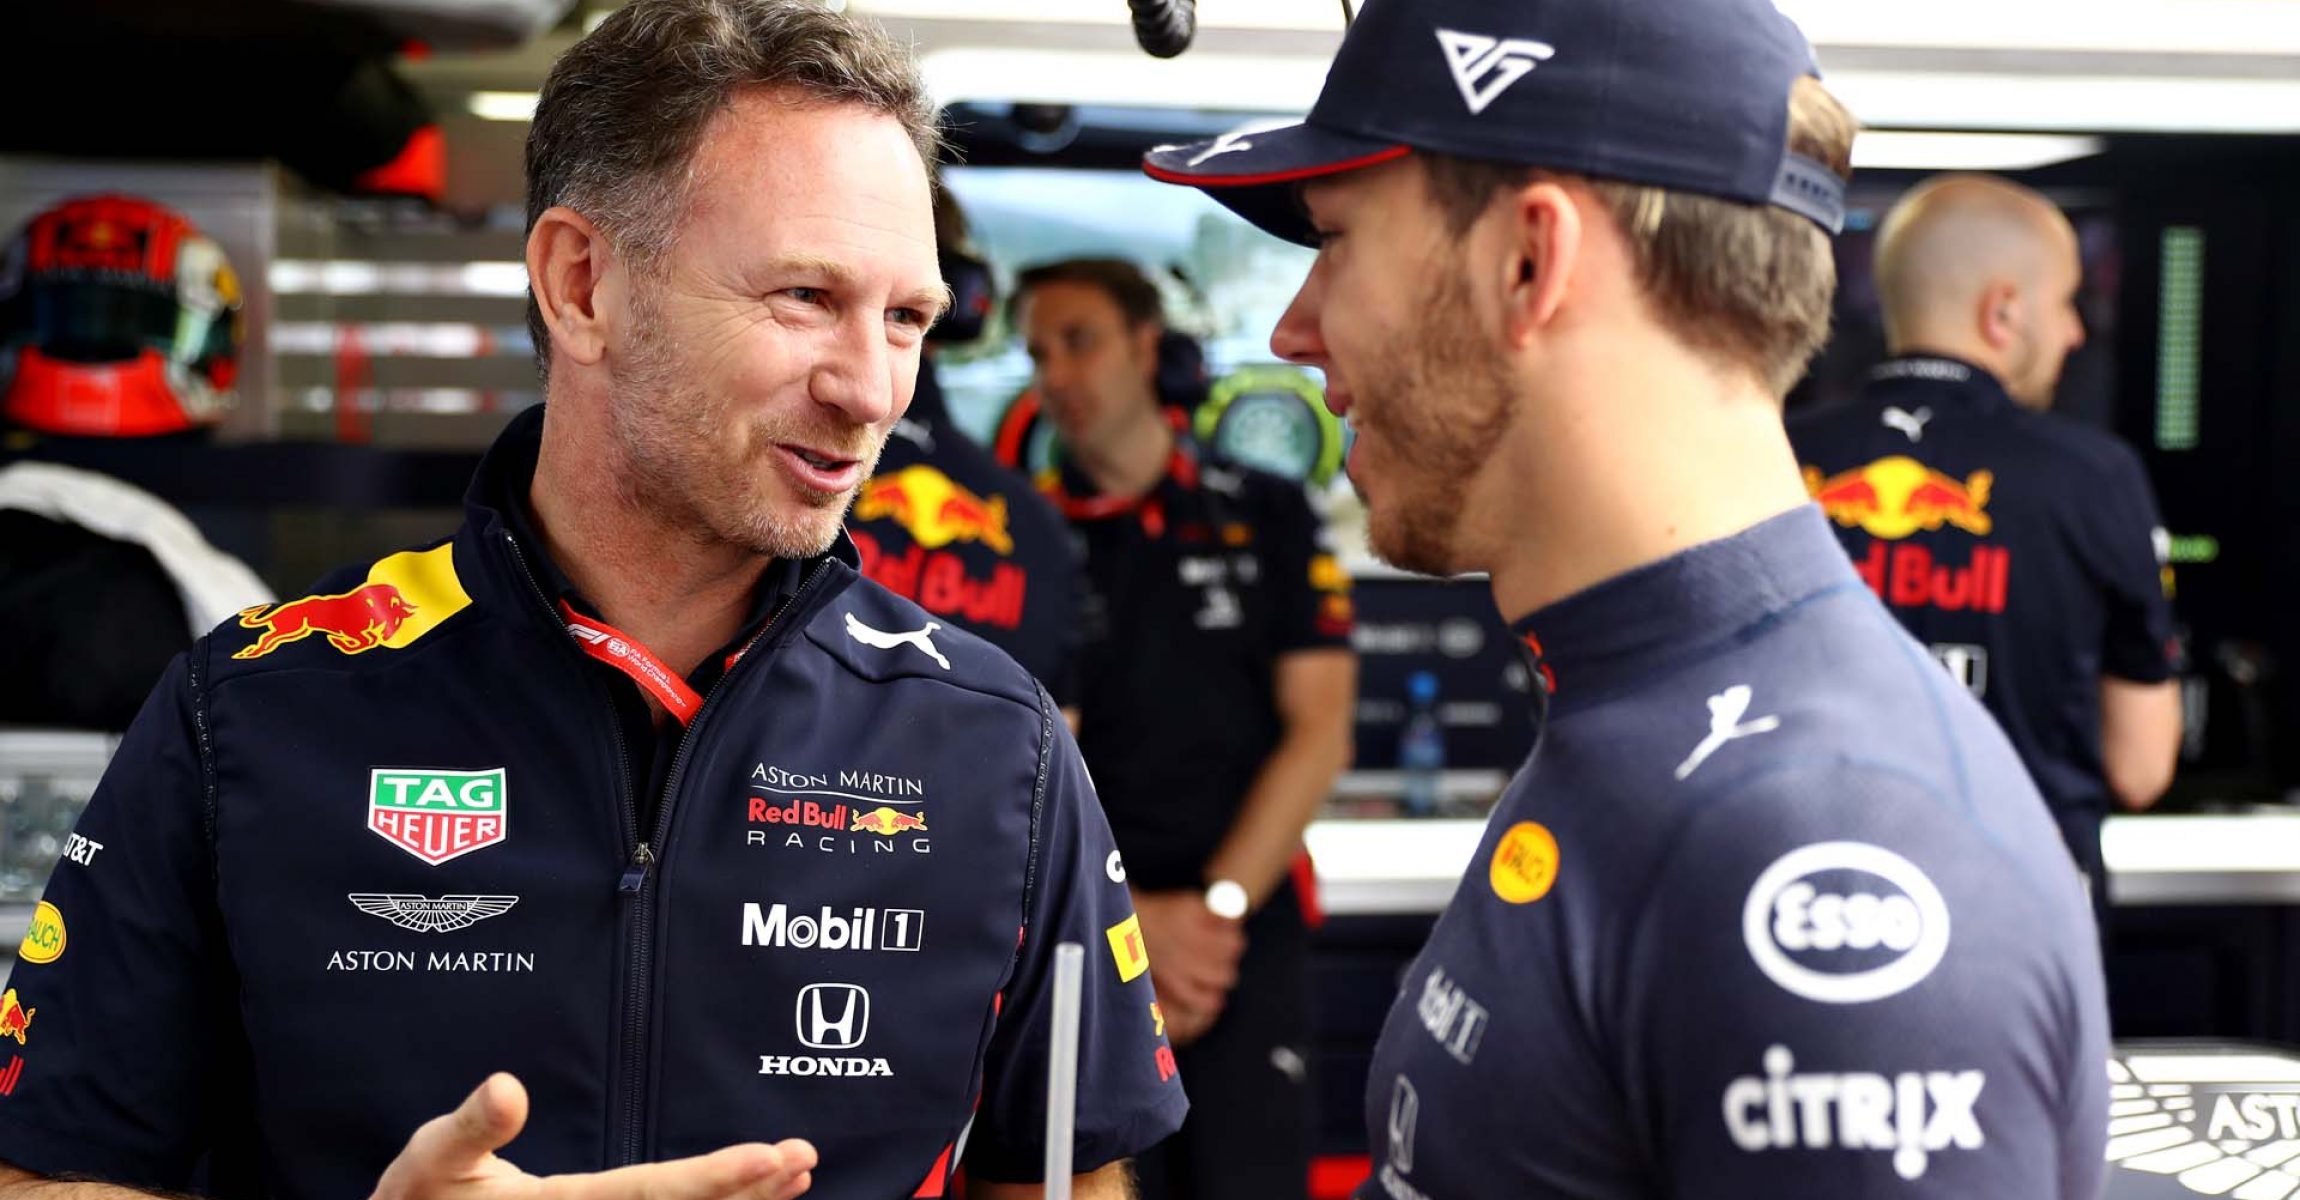 MONTE-CARLO, MONACO - MAY 23: Red Bull Racing Team Principal Christian Horner talks with Pierre Gasly of France and Red Bull Racing in the garage during practice for the F1 Grand Prix of Monaco at Circuit de Monaco on May 23, 2019 in Monte-Carlo, Monaco. (Photo by Mark Thompson/Getty Images) // Getty Images / Red Bull Content Pool  // AP-1ZE37U7VW2511 // Usage for editorial use only // Please go to www.redbullcontentpool.com for further information. //